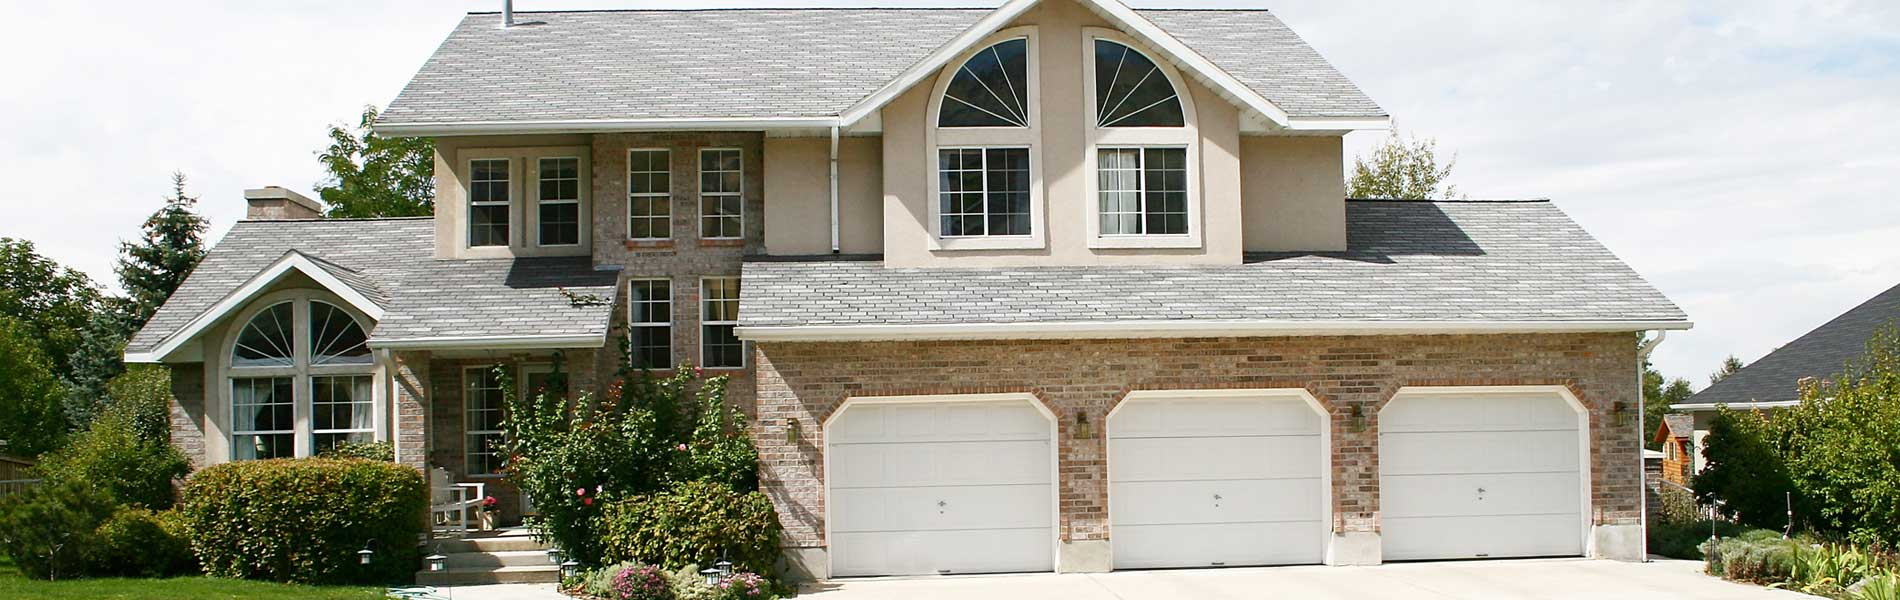 Elite Garage Door Service, Brookfield, IL 708-393-1964